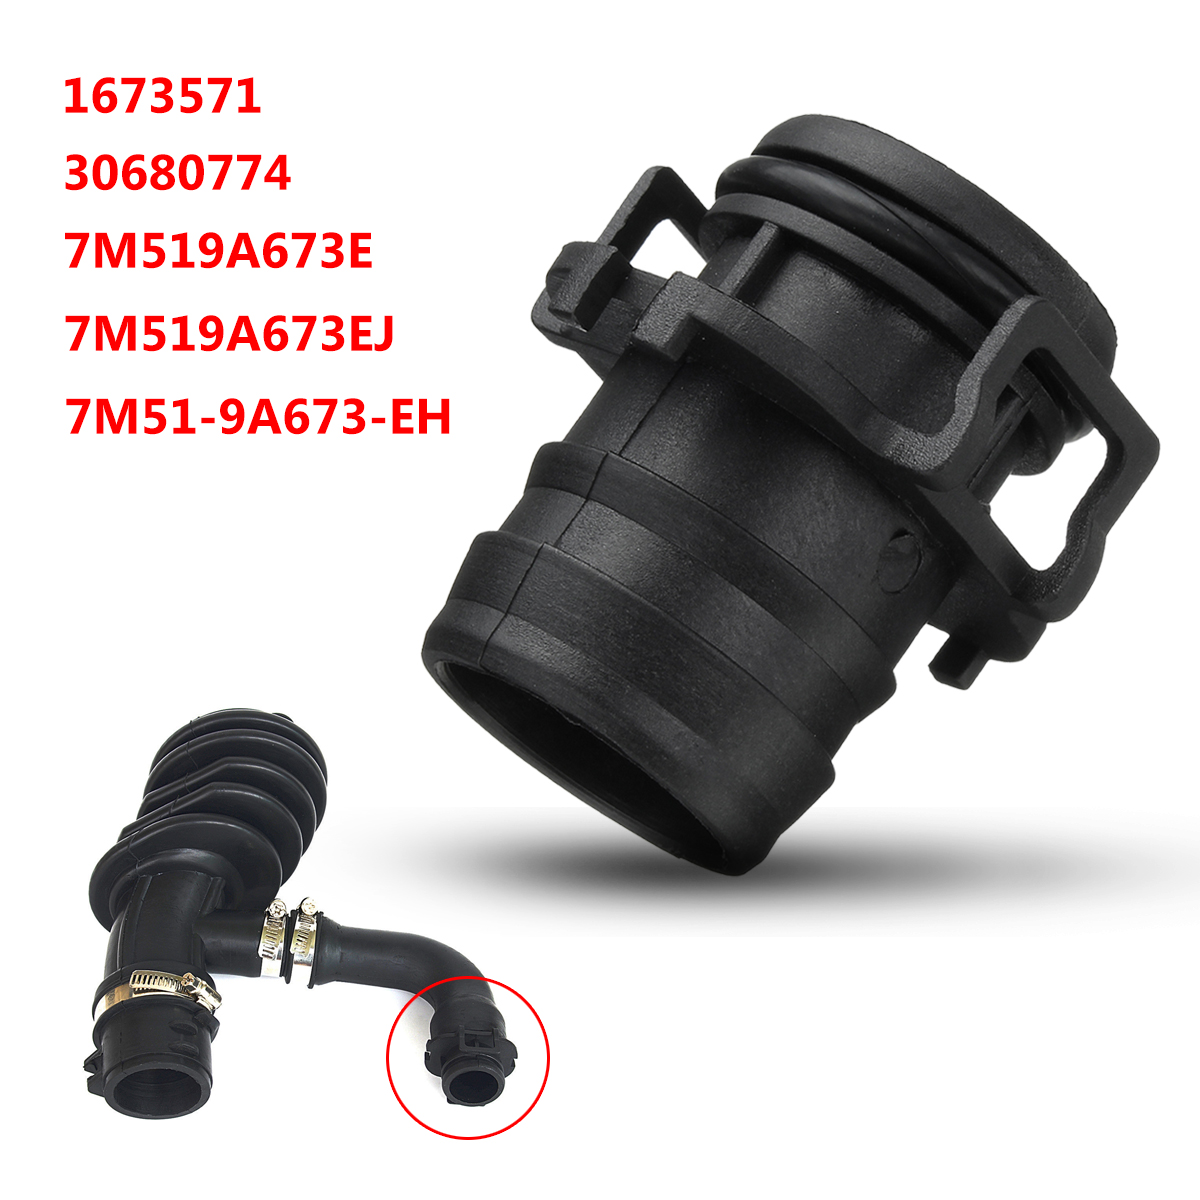 1Pc Black Air Intake System Filter Flow Intake Hose Pipe Clip For Ford For Focus For C-Max 7M519A673EJ 30680774 2003-2012